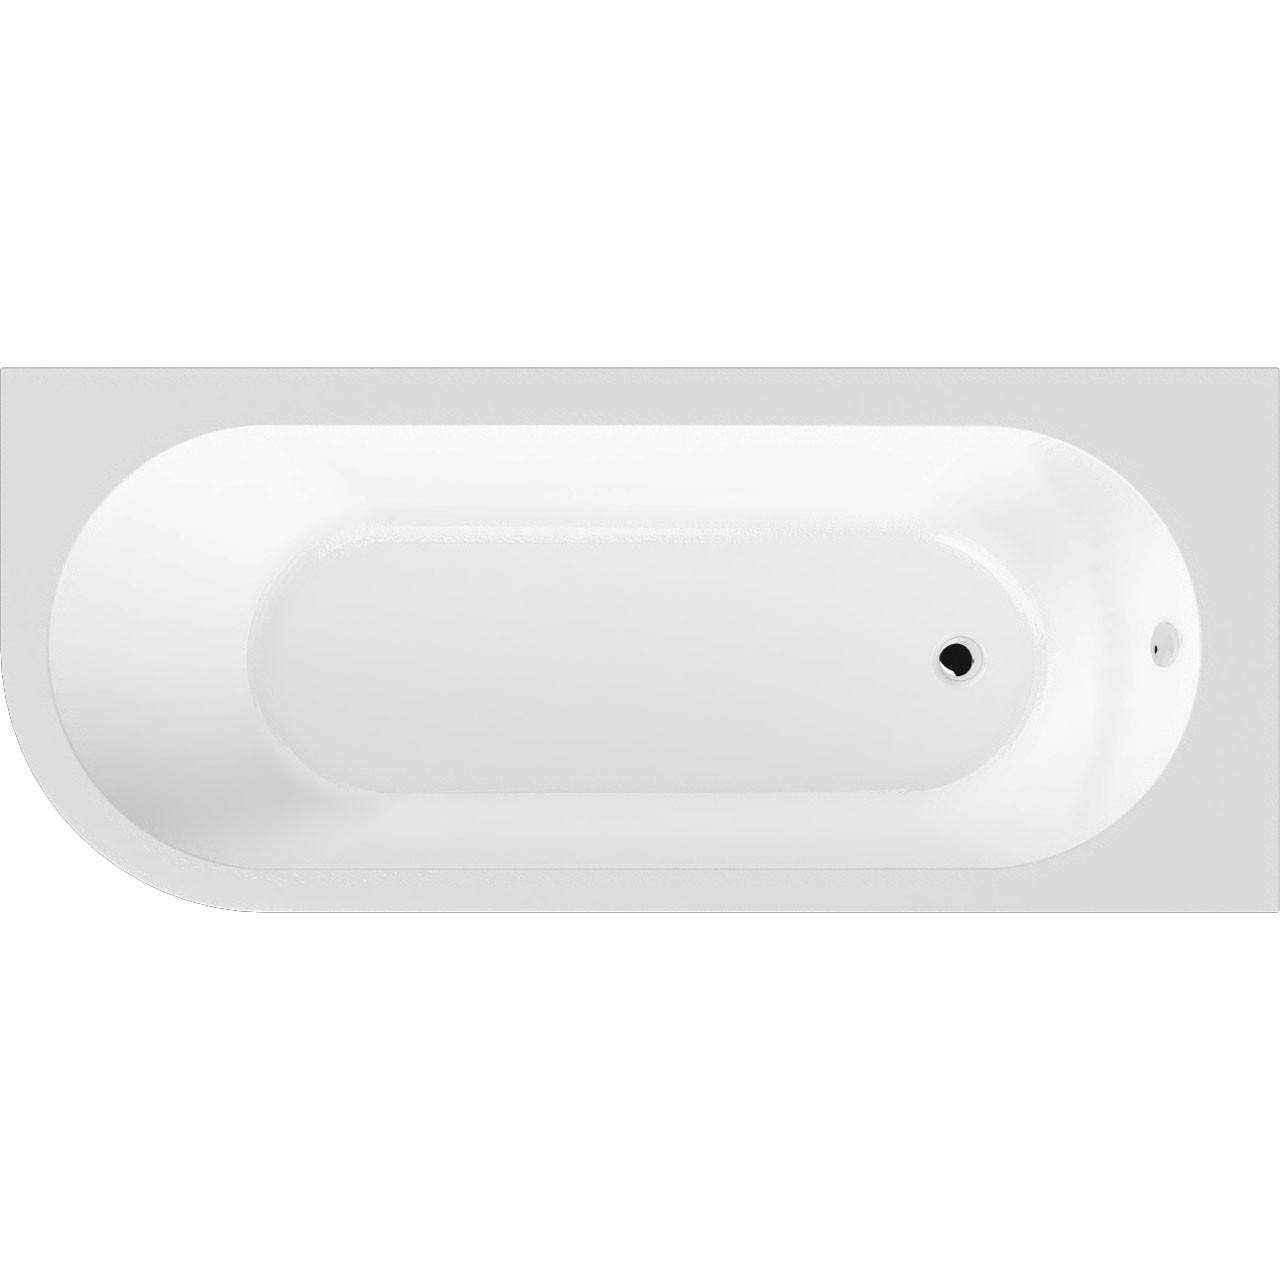 Premier Crescent Right Hand 1700mm x 725mm Back to Wall Corner Bath - NBH209R